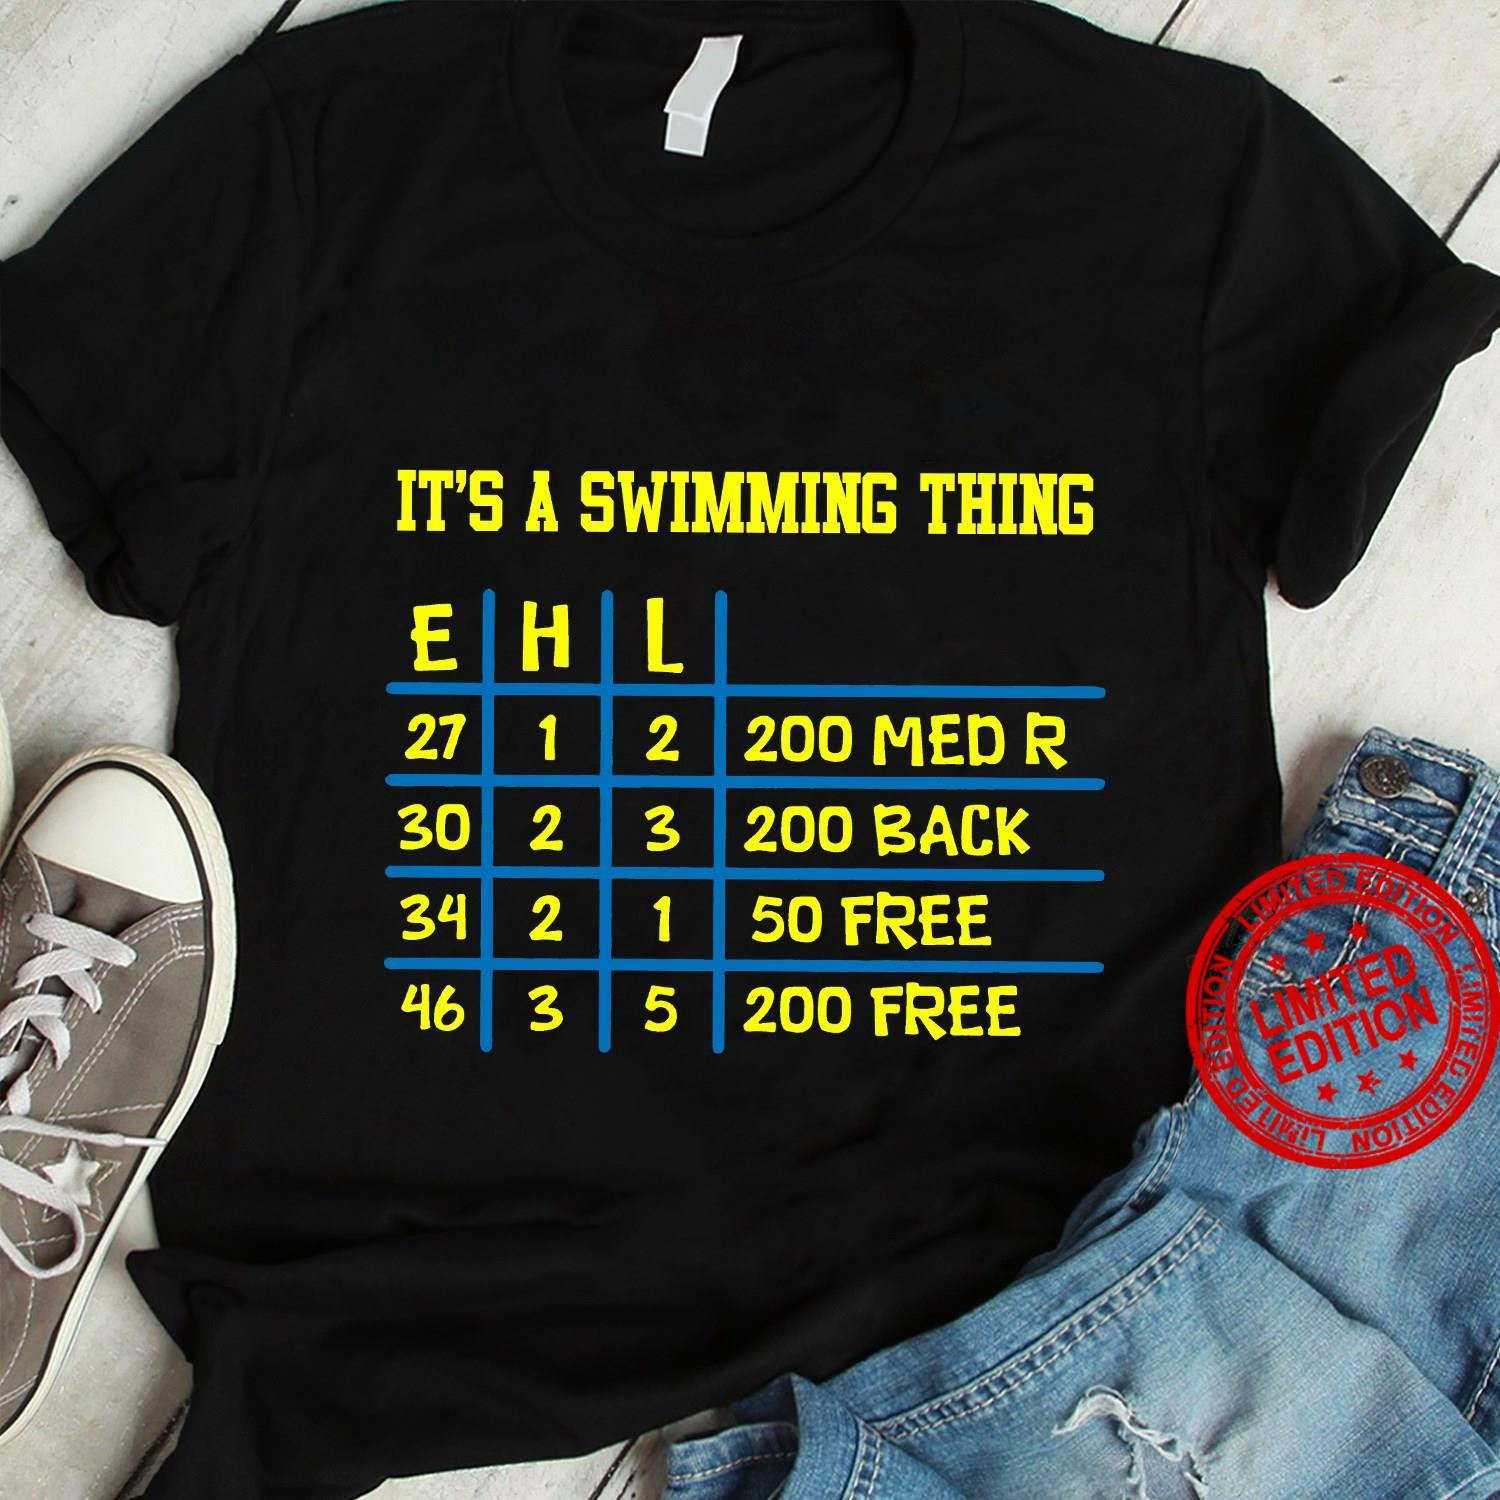 It's A Swimming Thing Shirt